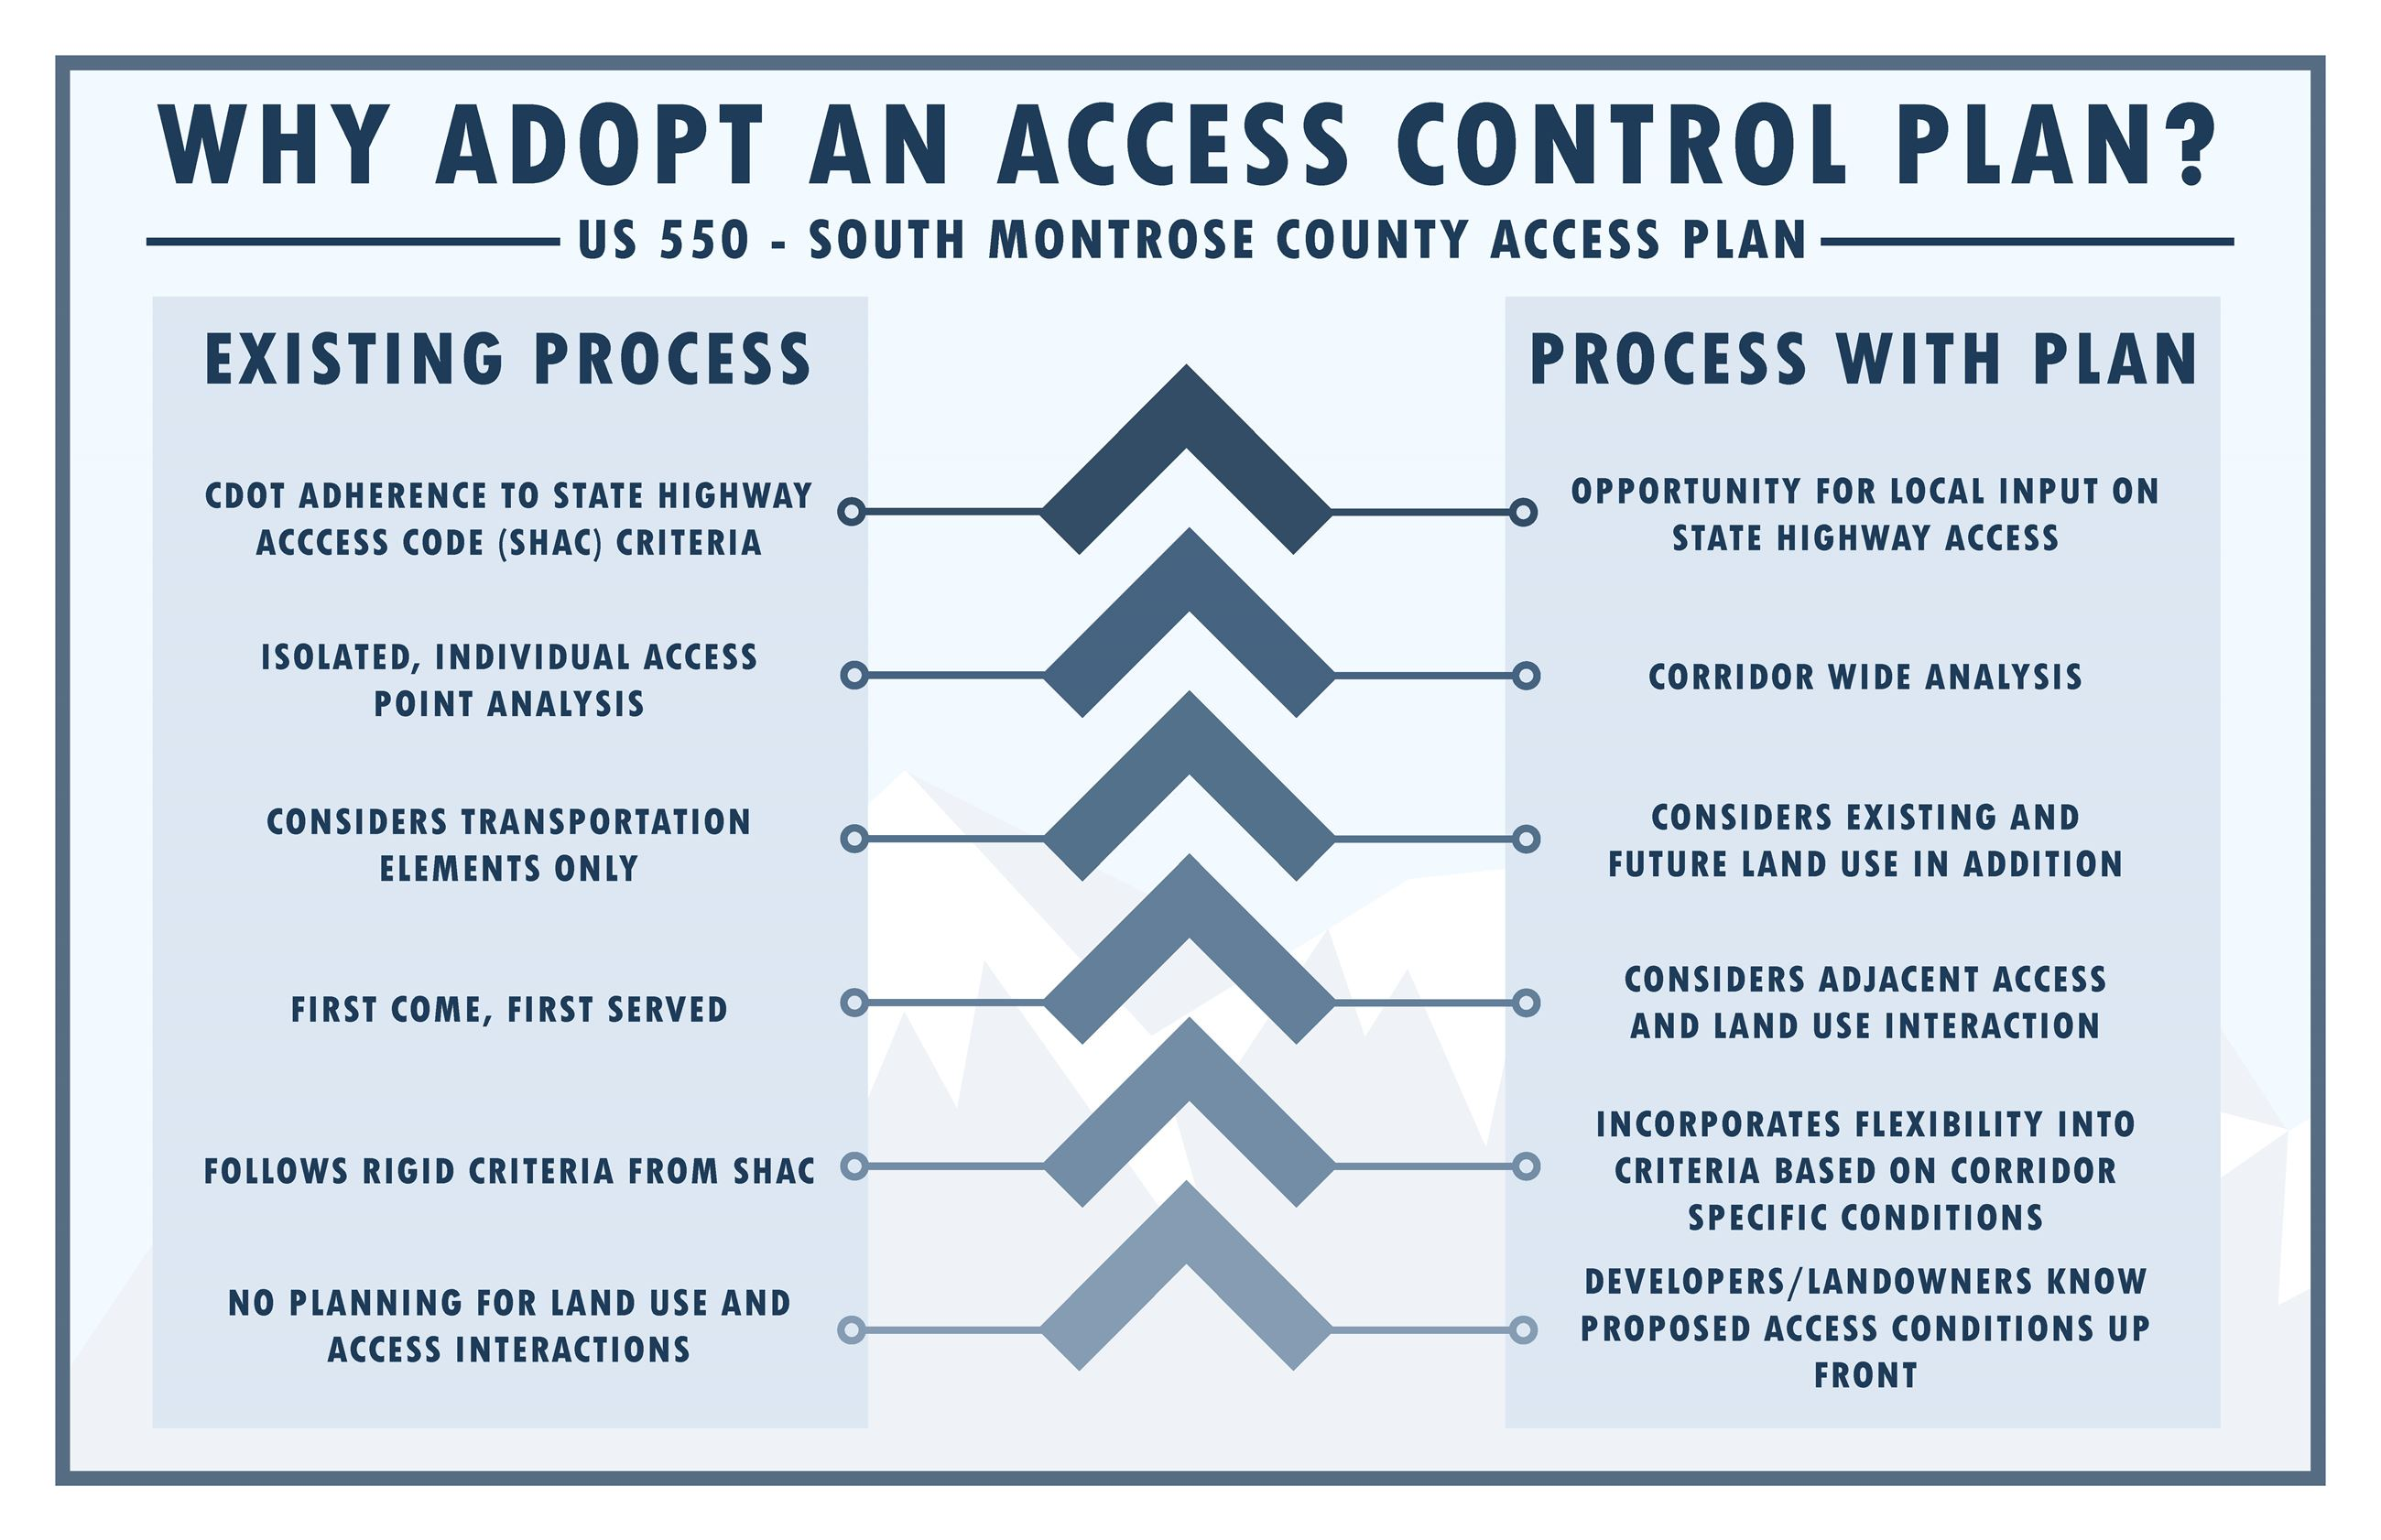 17 - Why adopt an access control plan